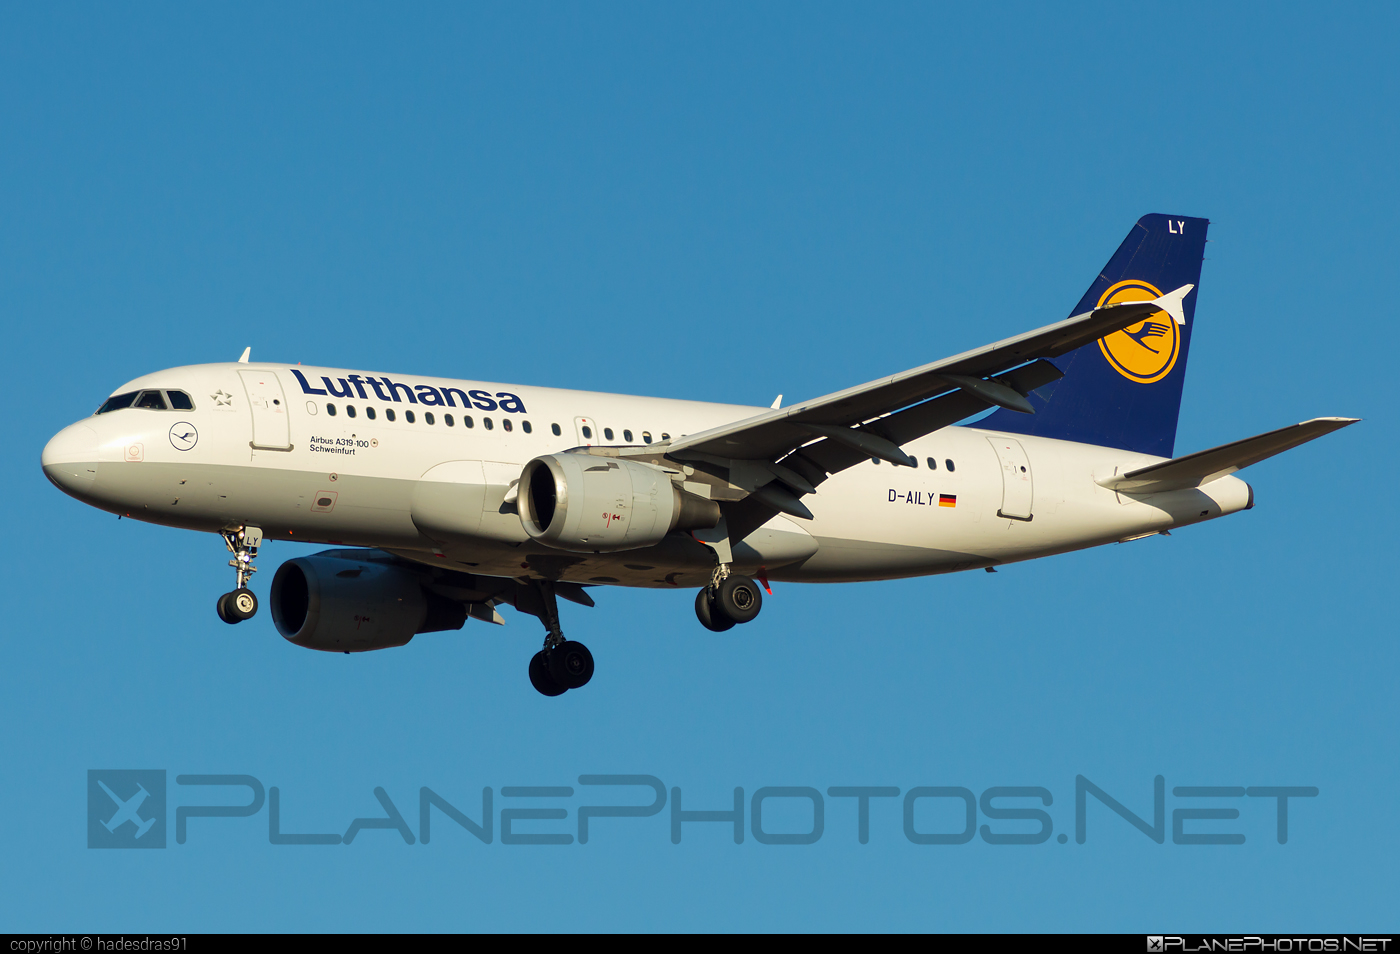 Airbus A319-114 - D-AILY operated by Lufthansa #a319 #a320family #airbus #airbus319 #lufthansa